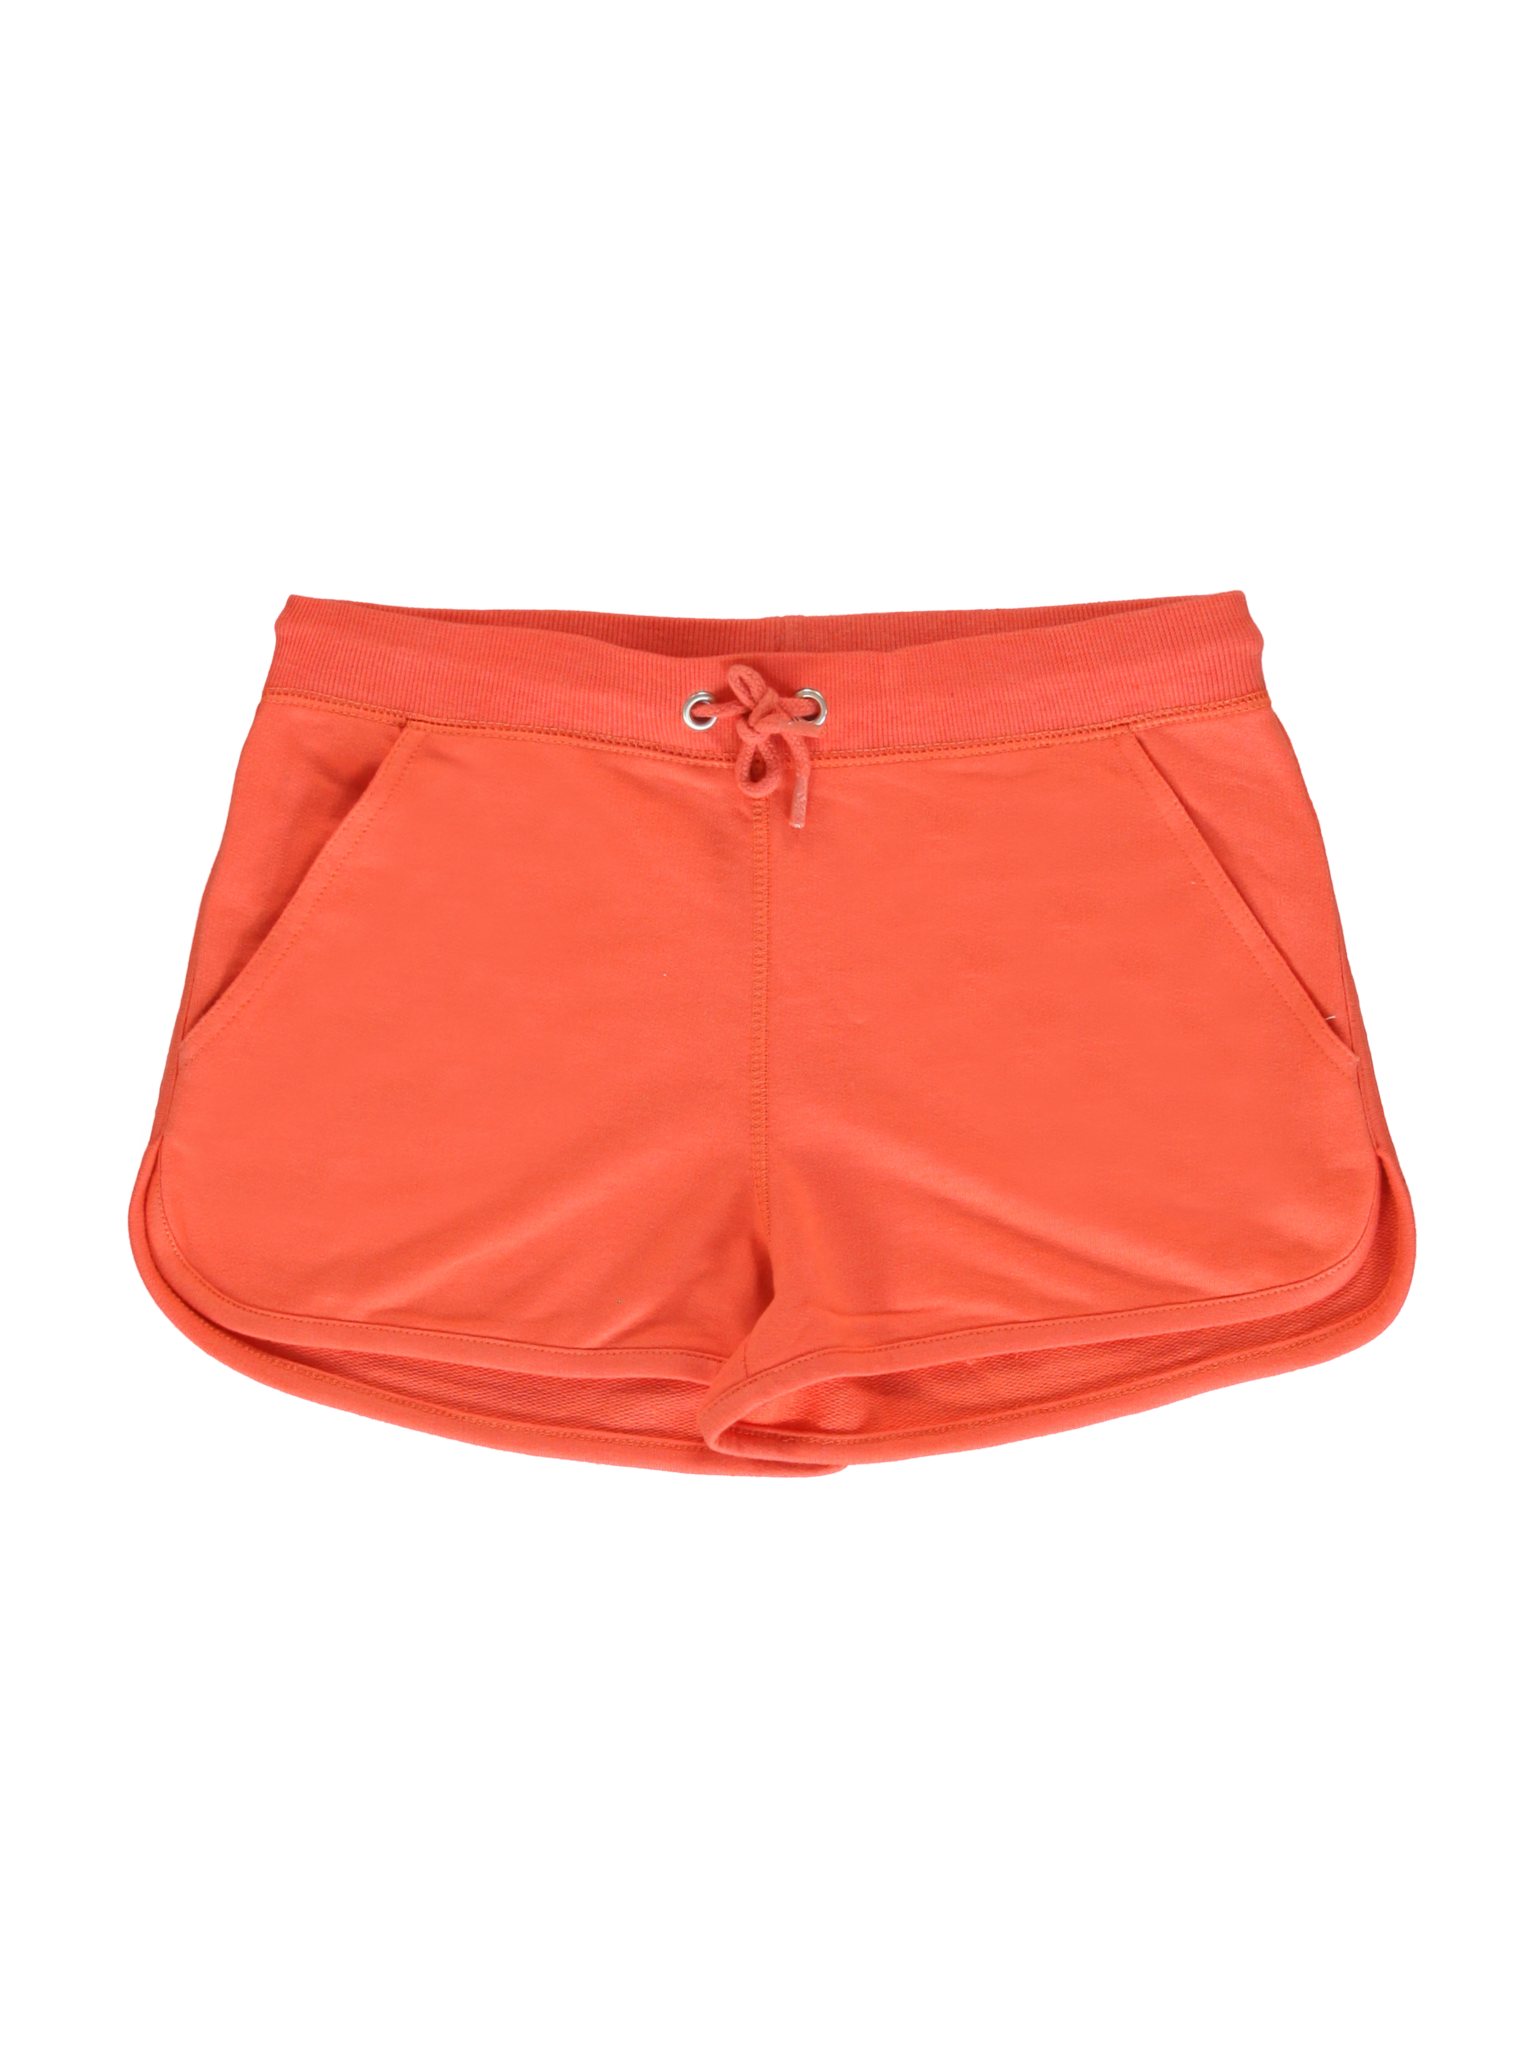 All Brands | Summerproducts Ladies | Shorts | 24 pcs/box